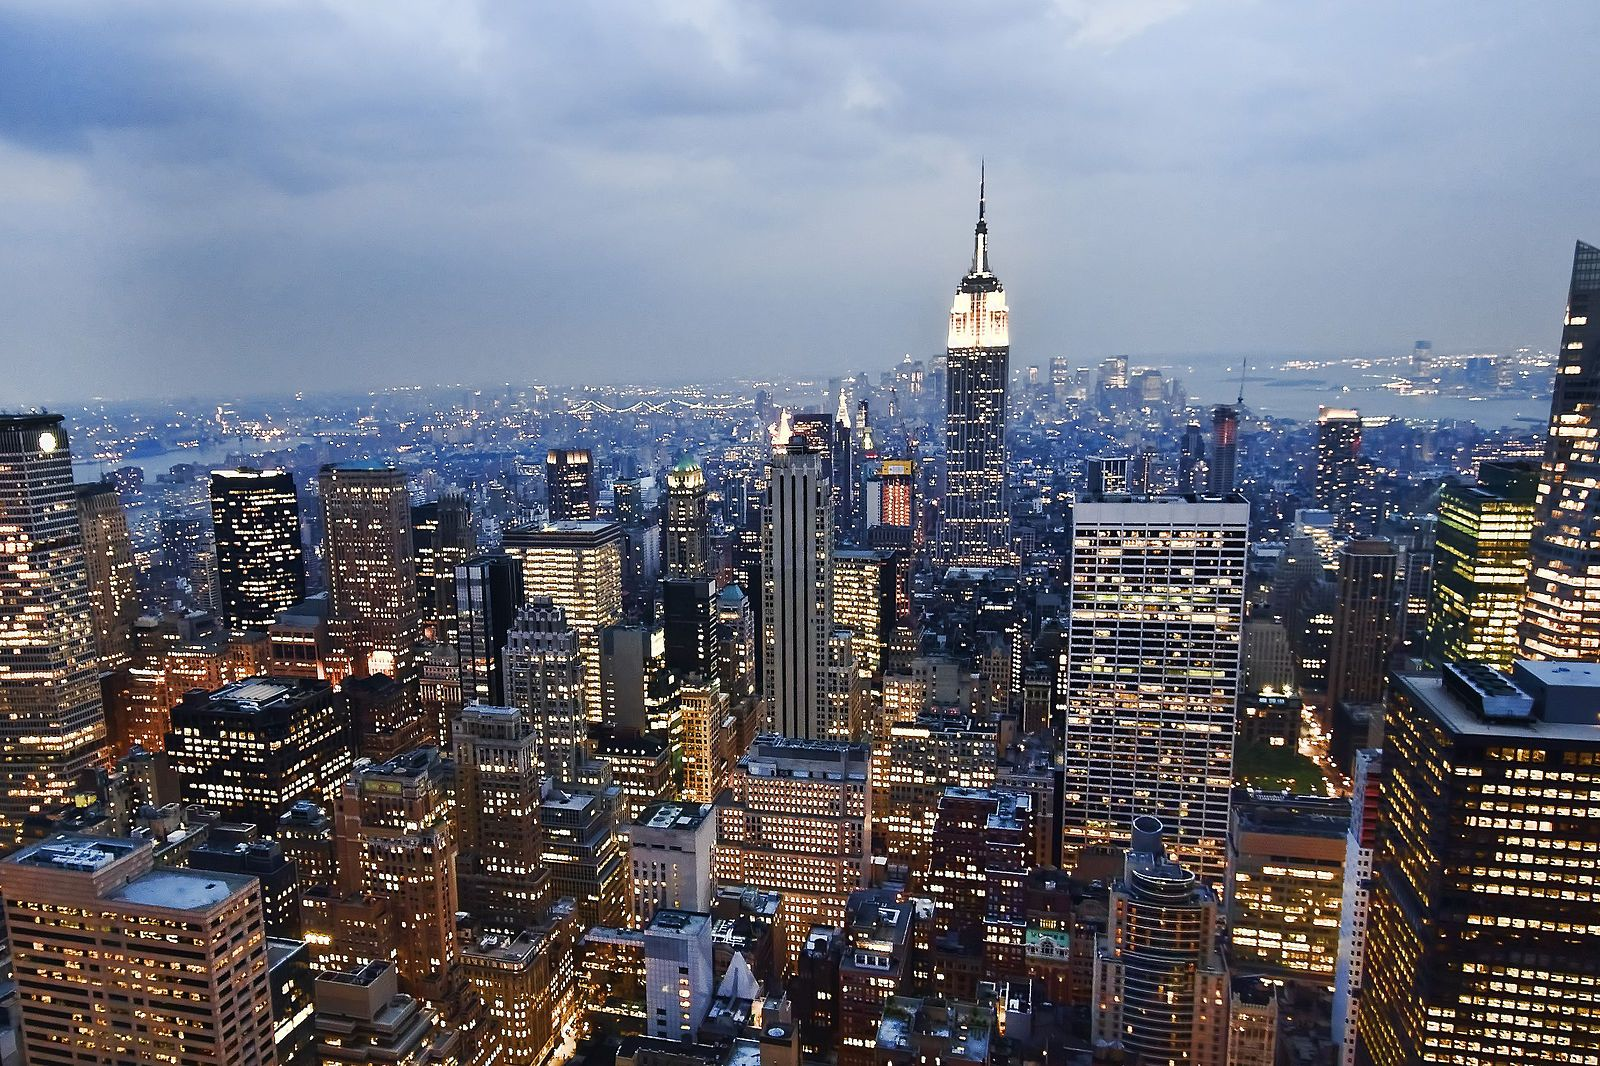 File:View of the Empire State Building from the Rockefeller Center observation deck NYC - 18 August 2009.jpg